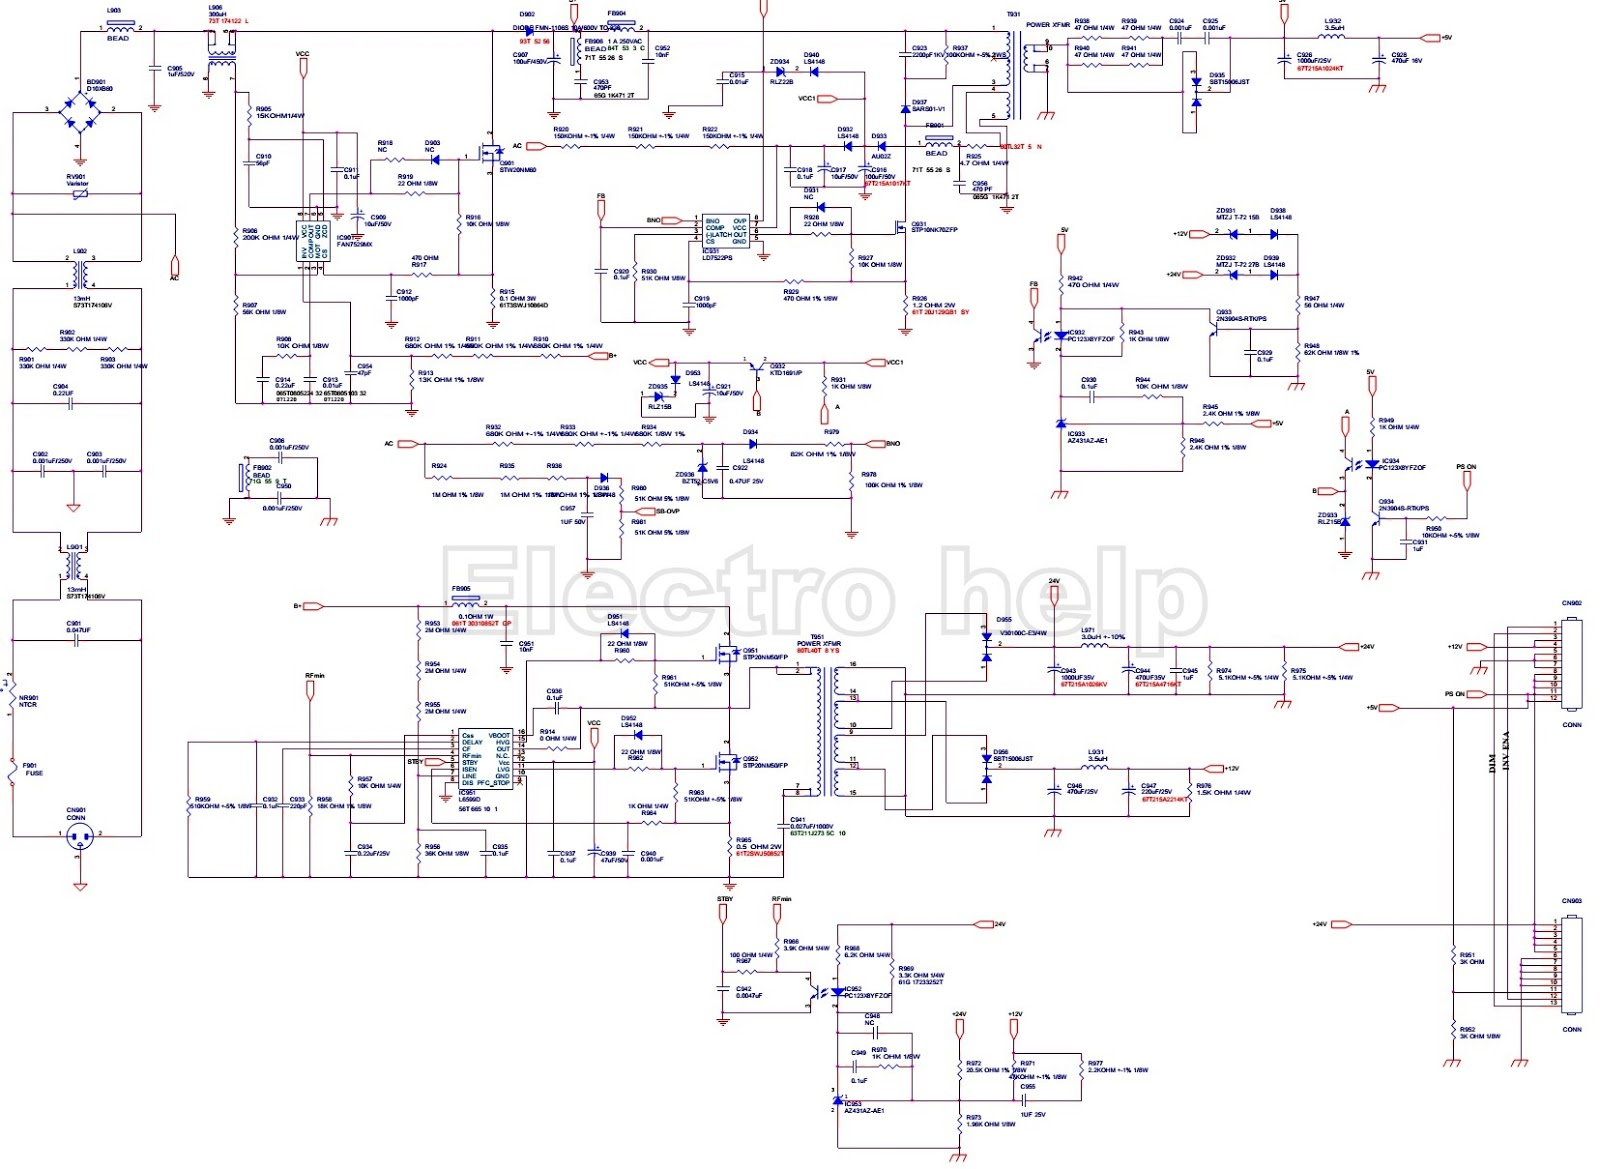 Lg Lcd Tv Power Supply 715t3181 Schematic Electro Help Click On The To Magnify